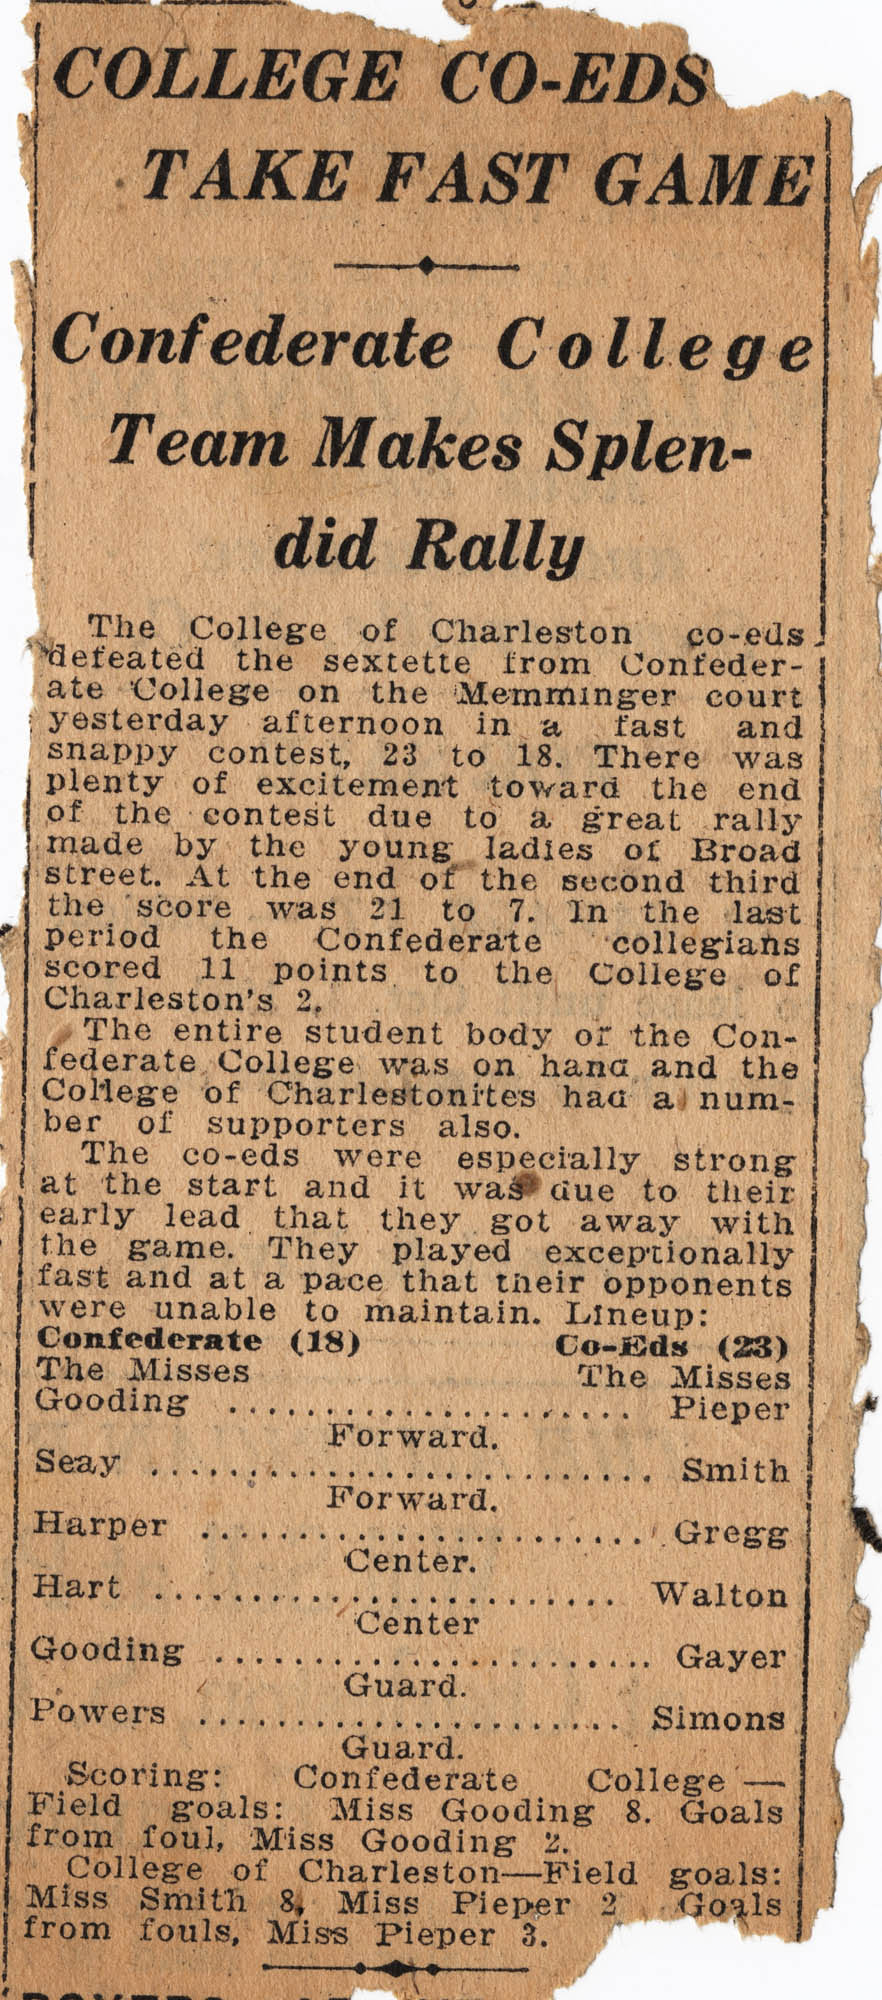 Newspaper Clippings about College of Charleston basketball